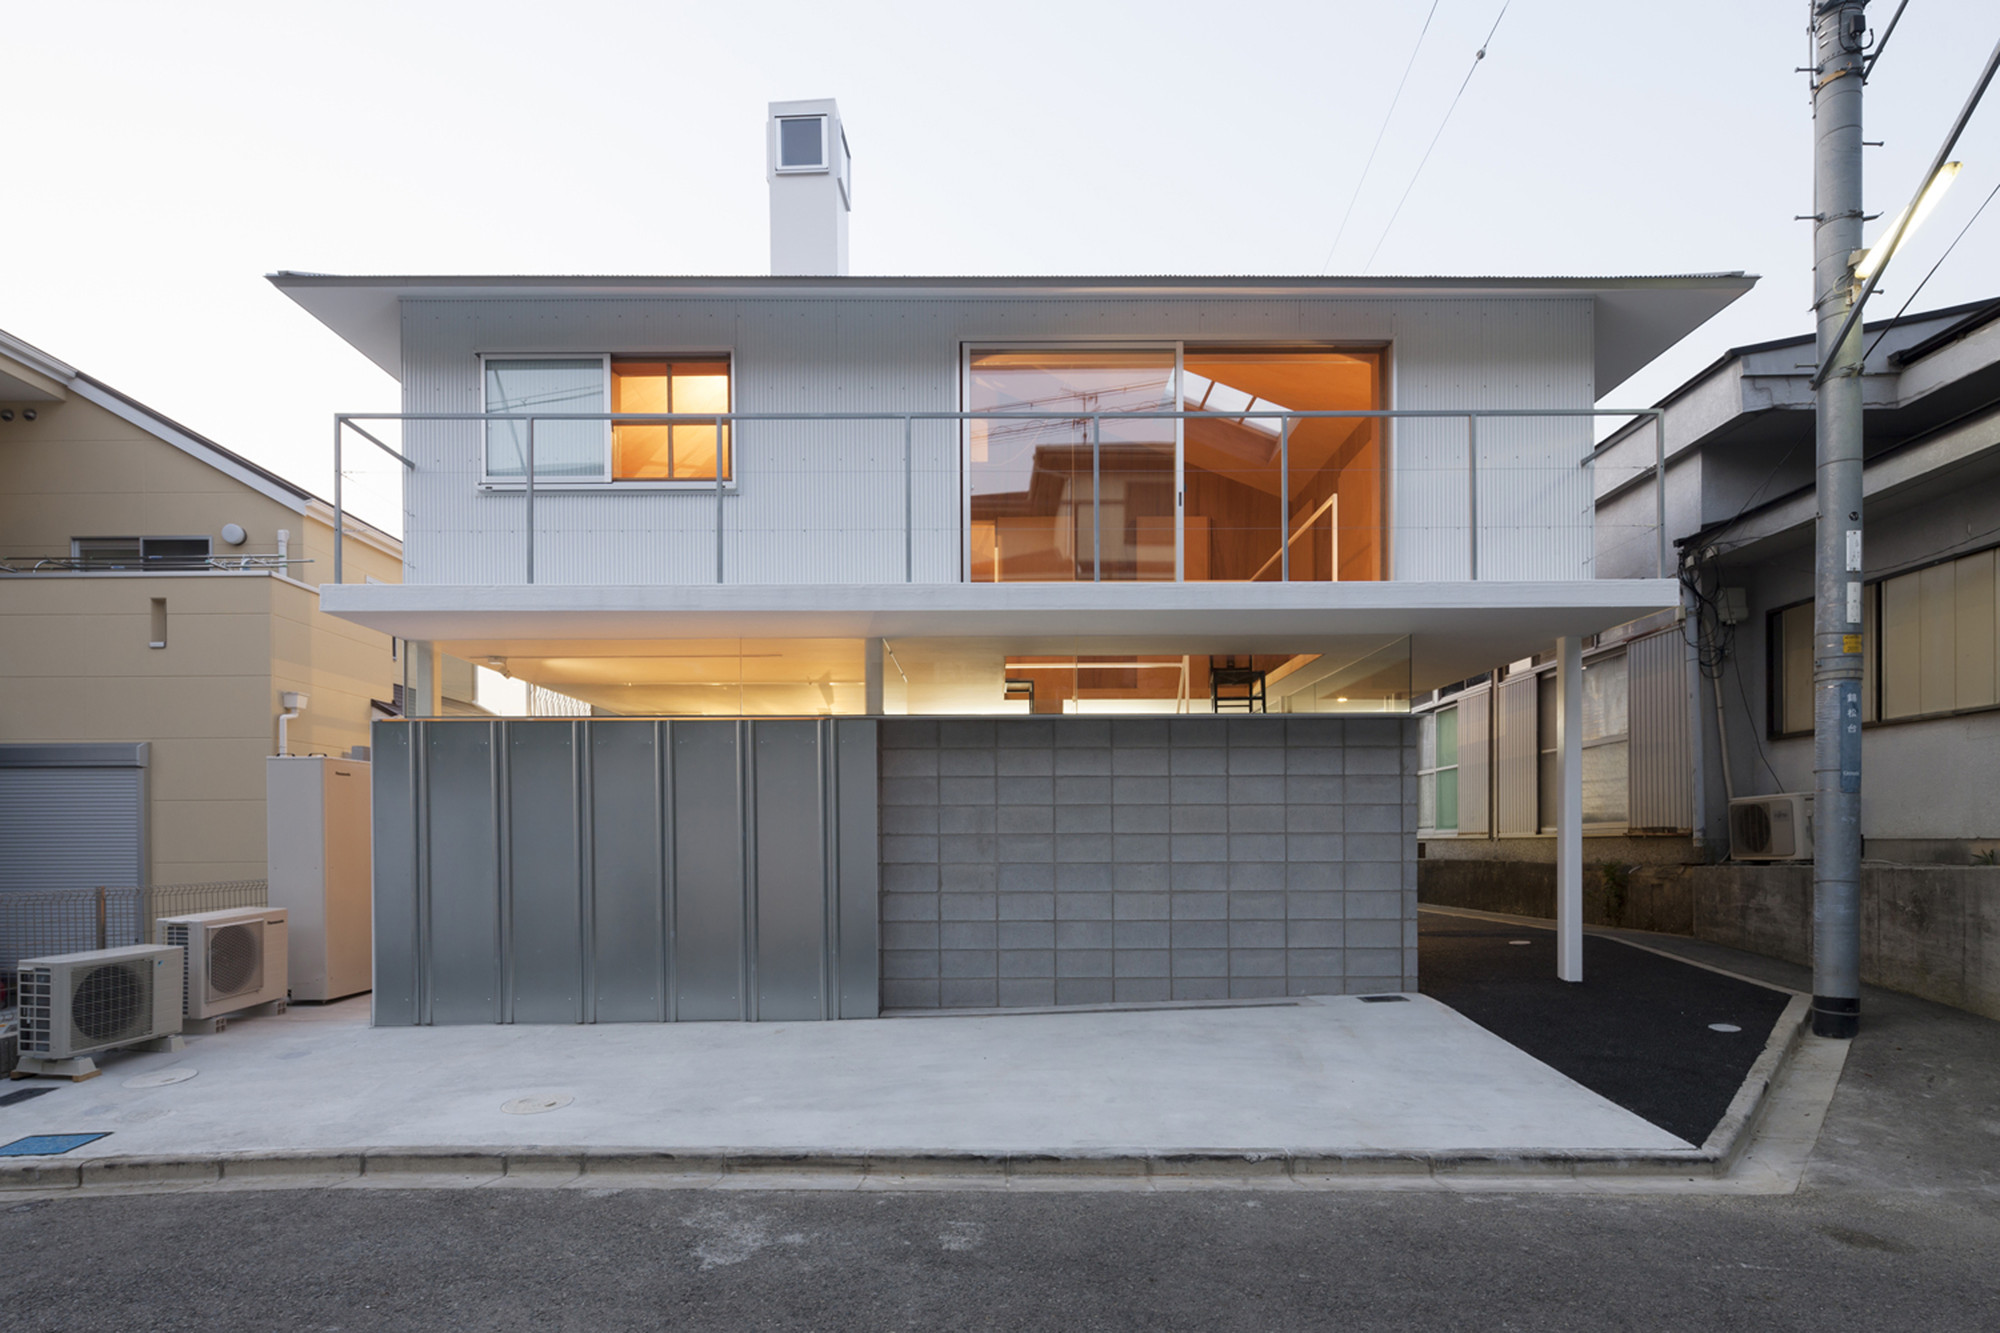 House in Kawanishi / Tato Architects, © Shinkenchiku Sha